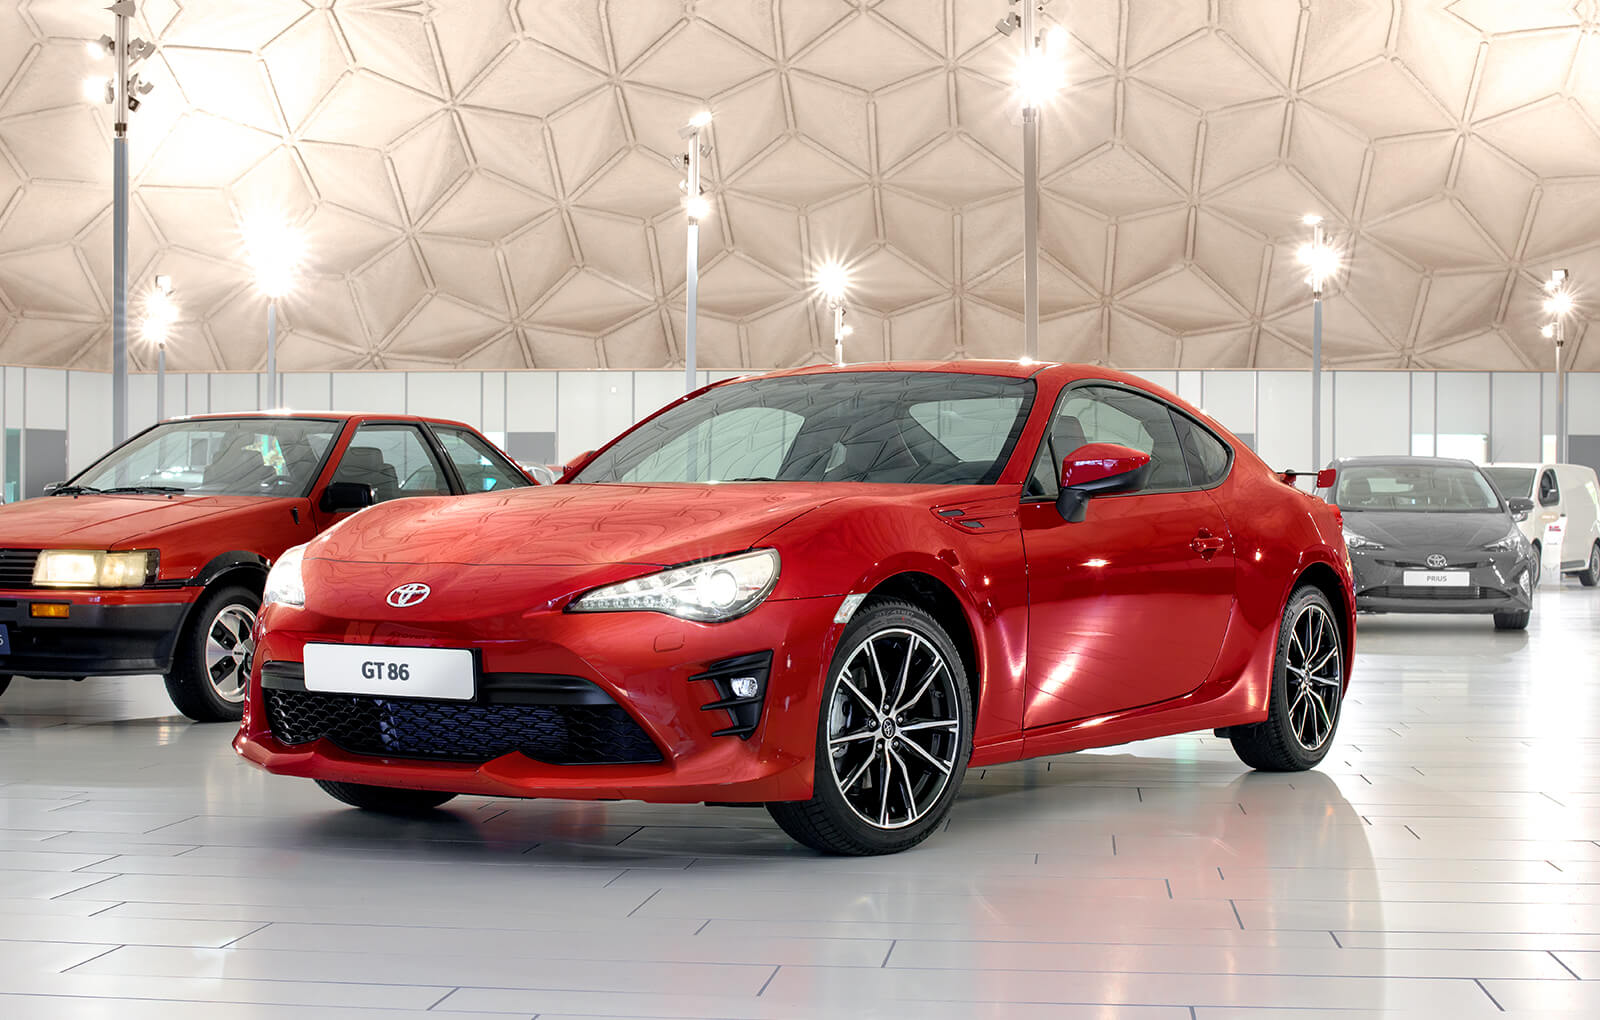 gt86 history of toyota sports cars toyota uk. Black Bedroom Furniture Sets. Home Design Ideas